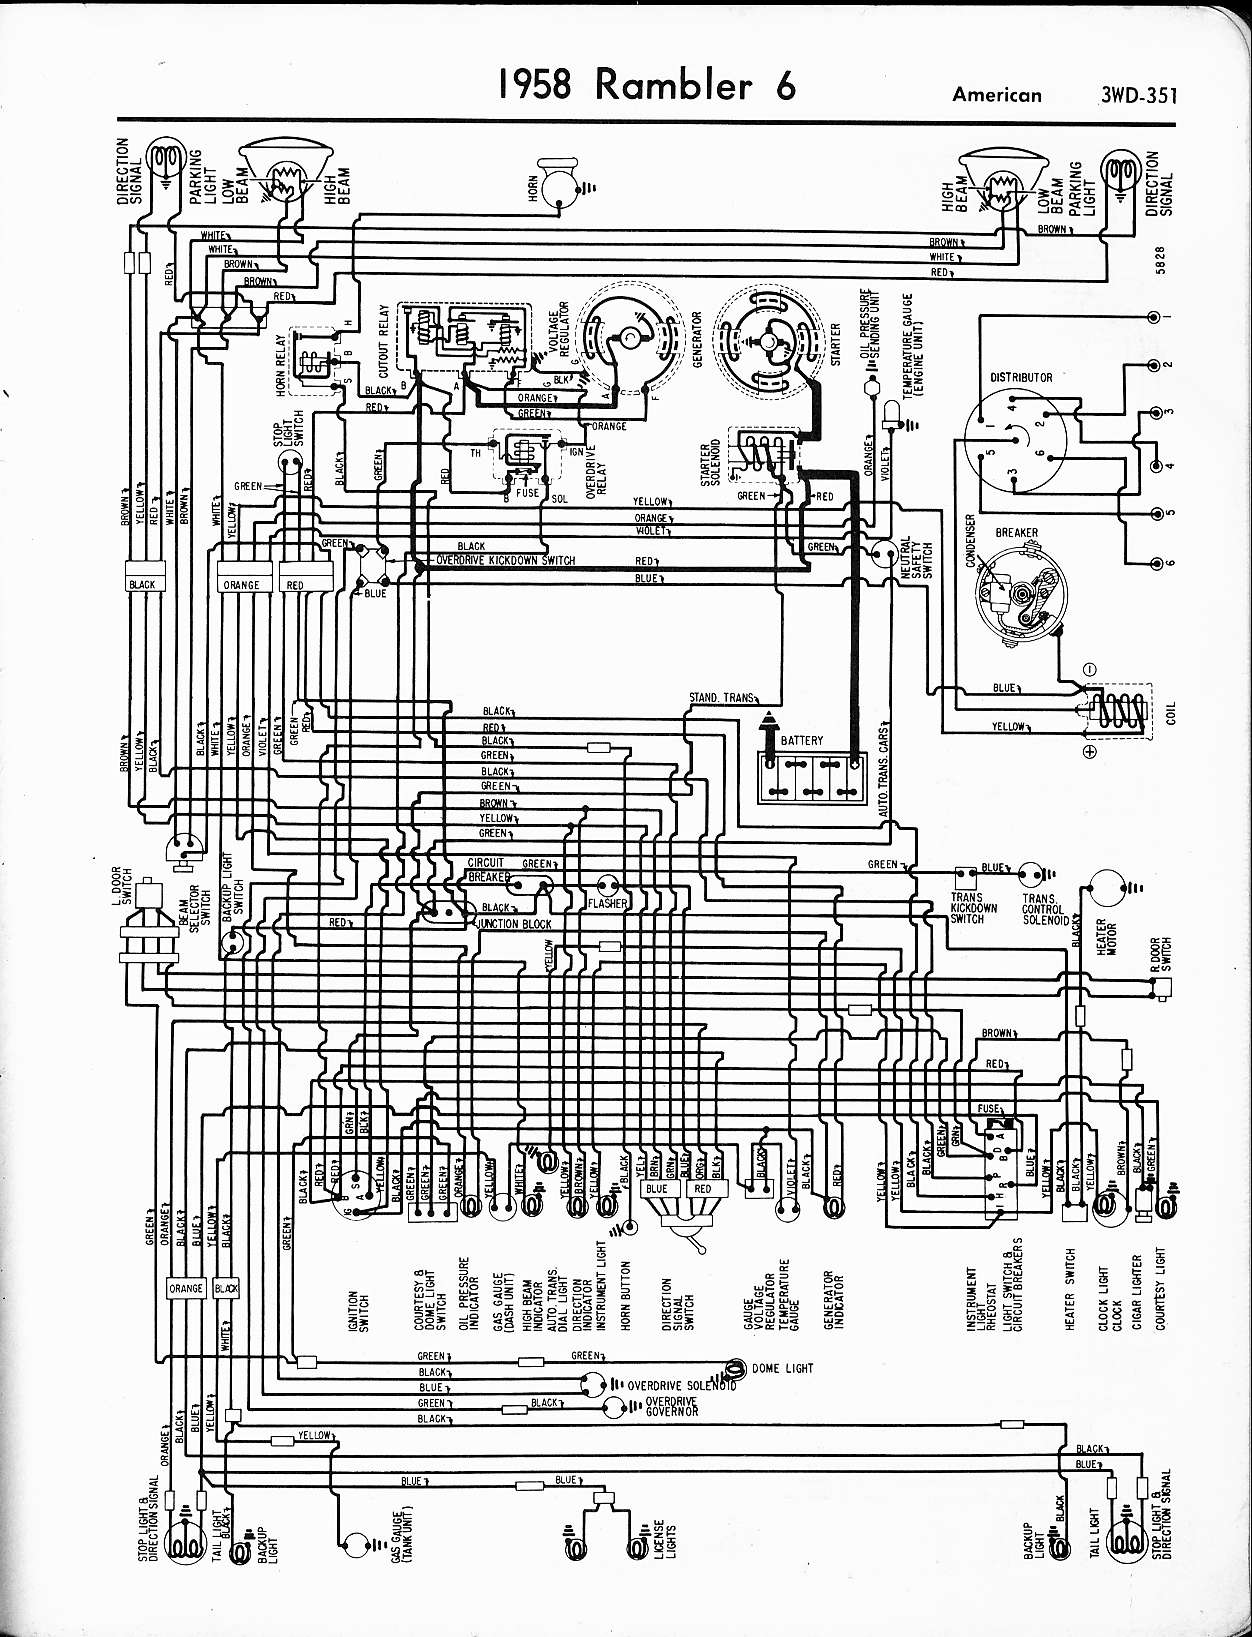 Electrical Holiday Rambler Wiring Diagram from www.oldcarmanualproject.com